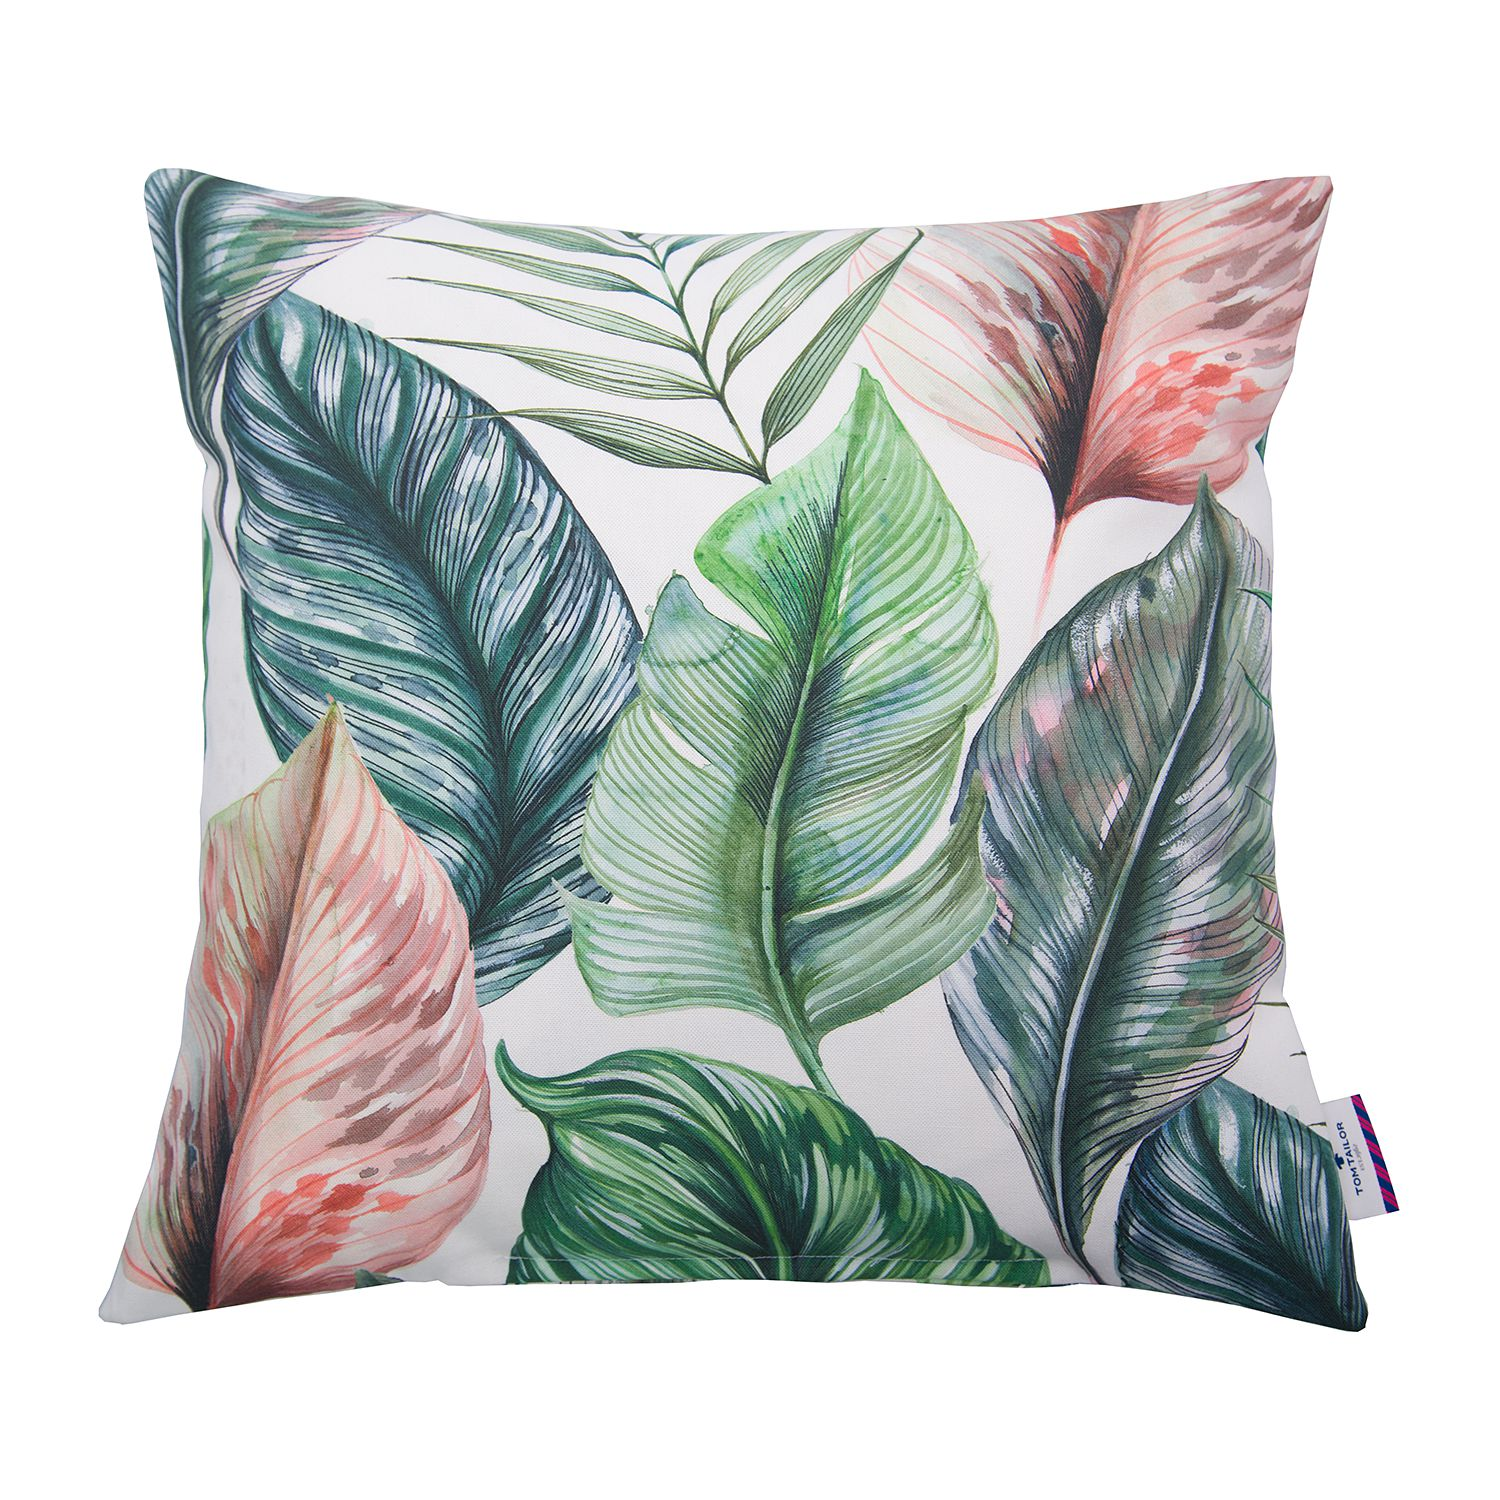 housse de coussin t colored leaves coton vert blanc tom